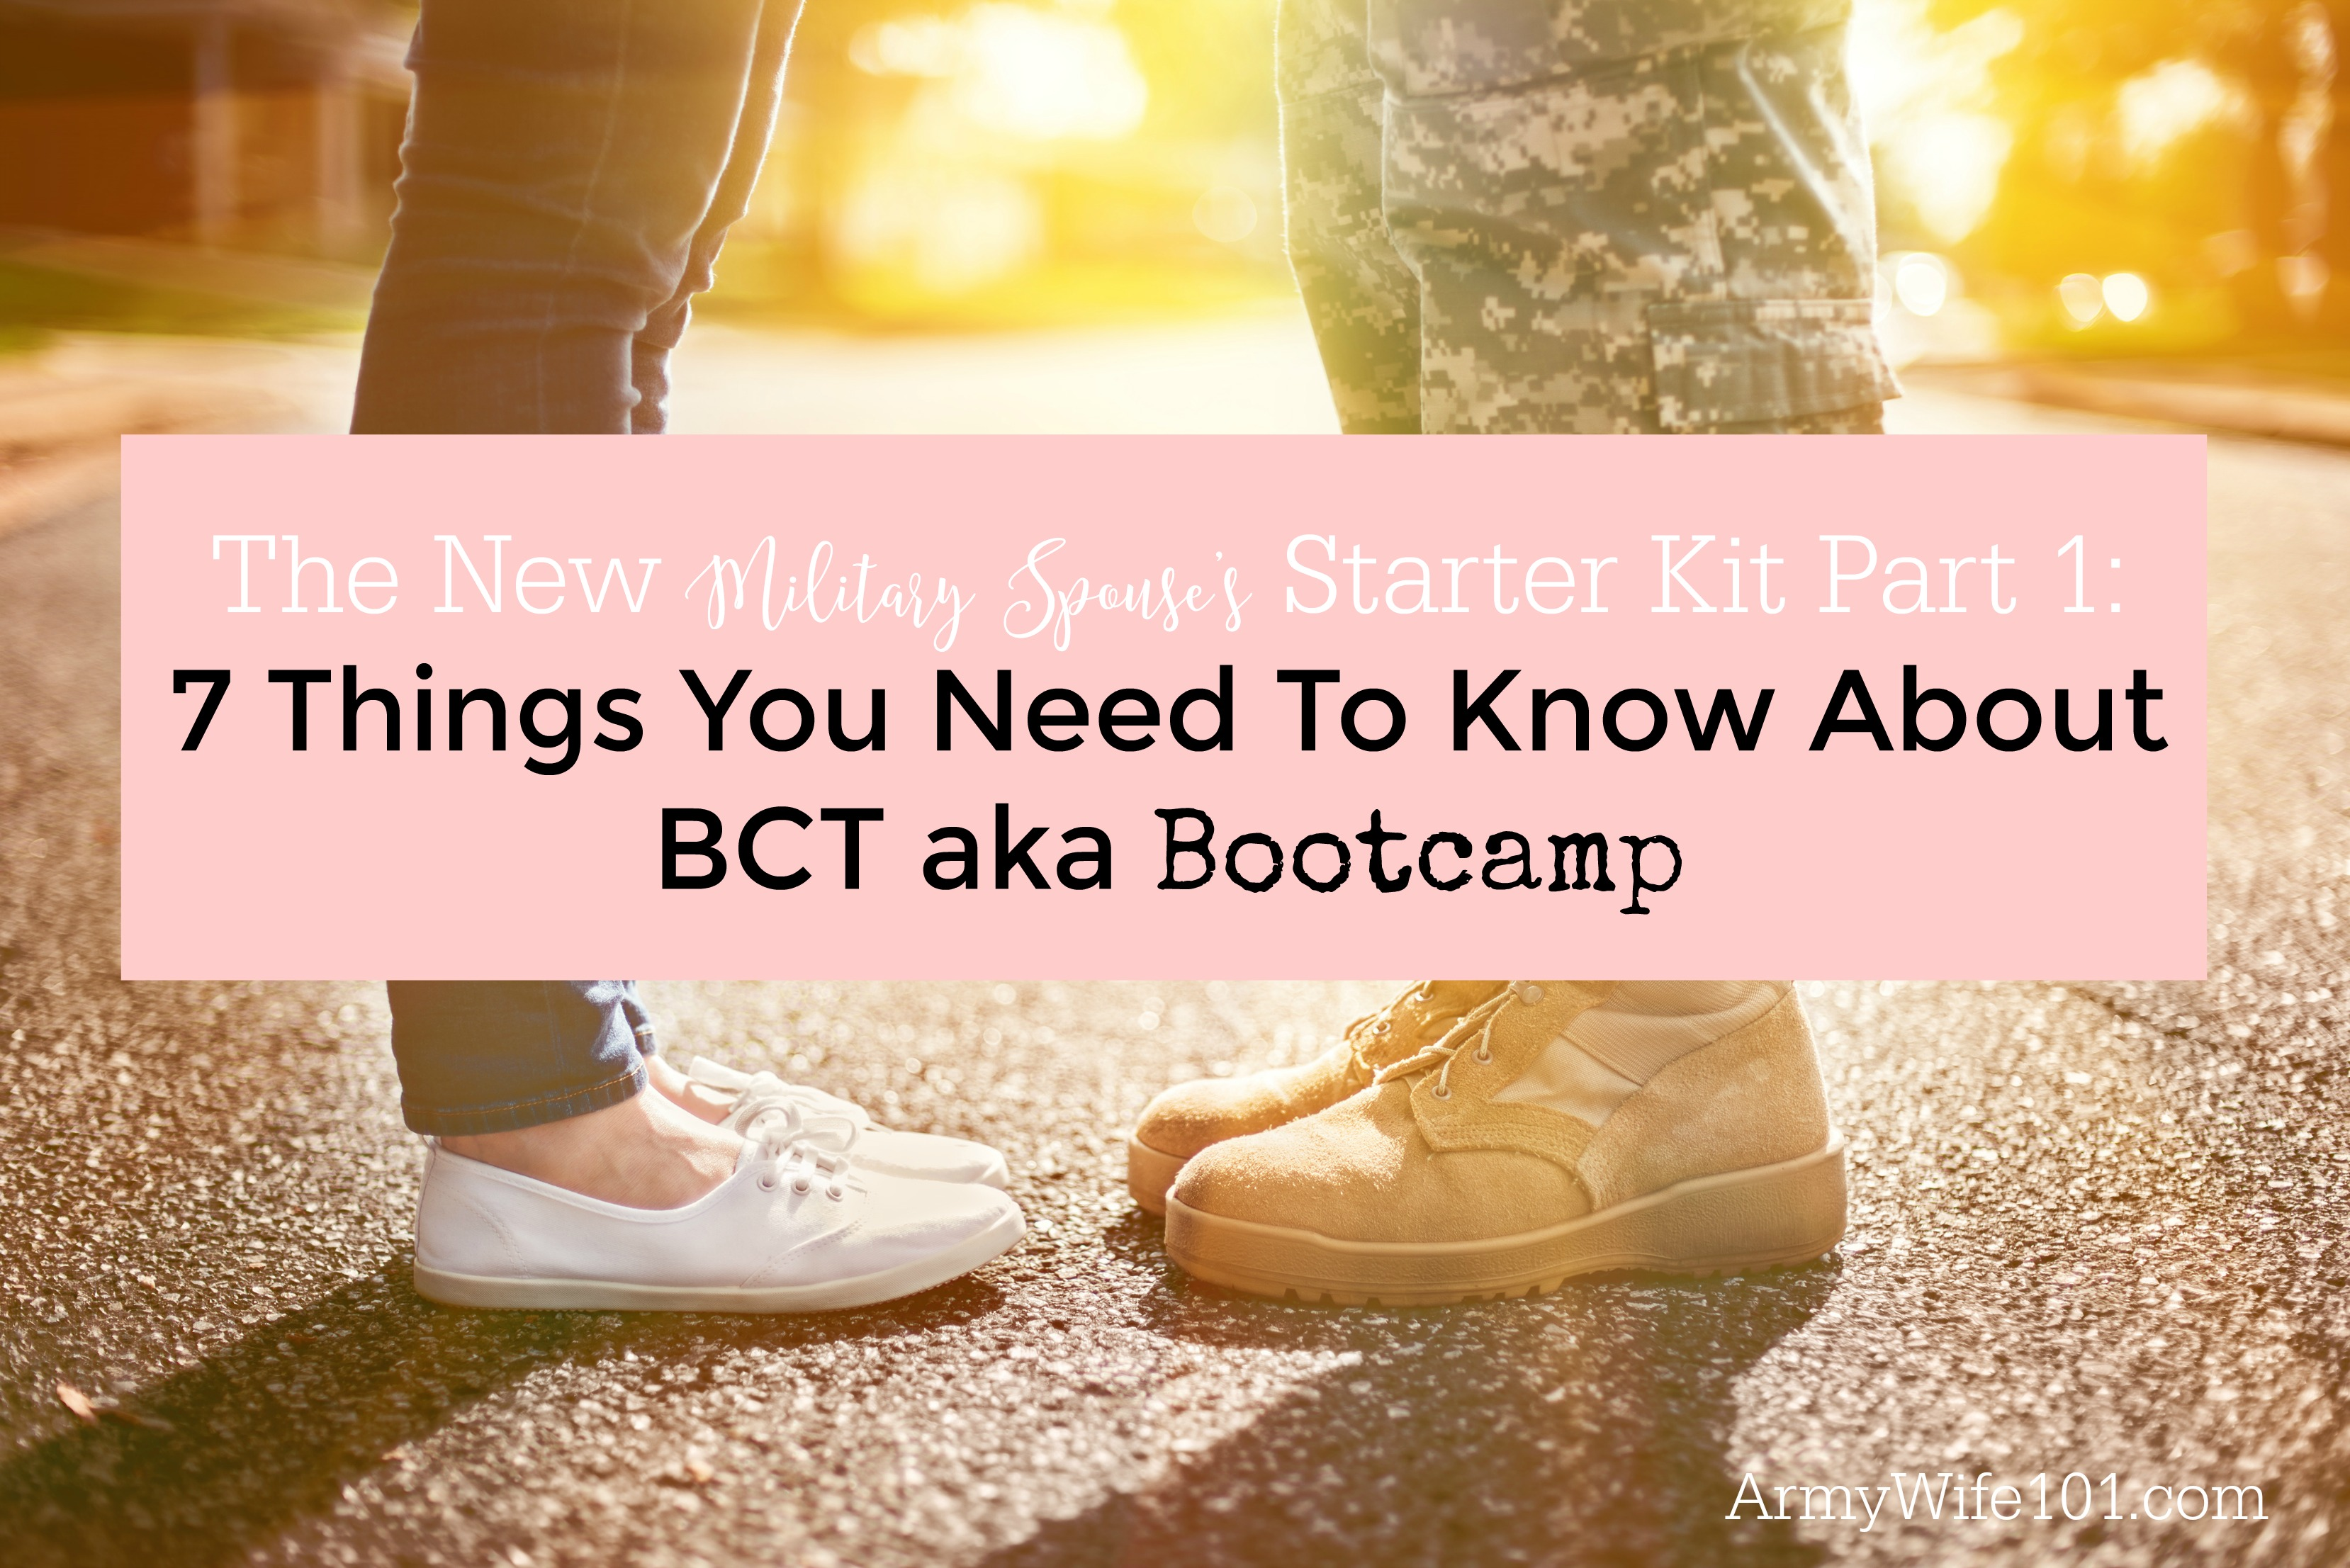 The New Military Spouse's Starter Kit Part 1: 7 Things You Need To Know About BCT aka Bootcamp